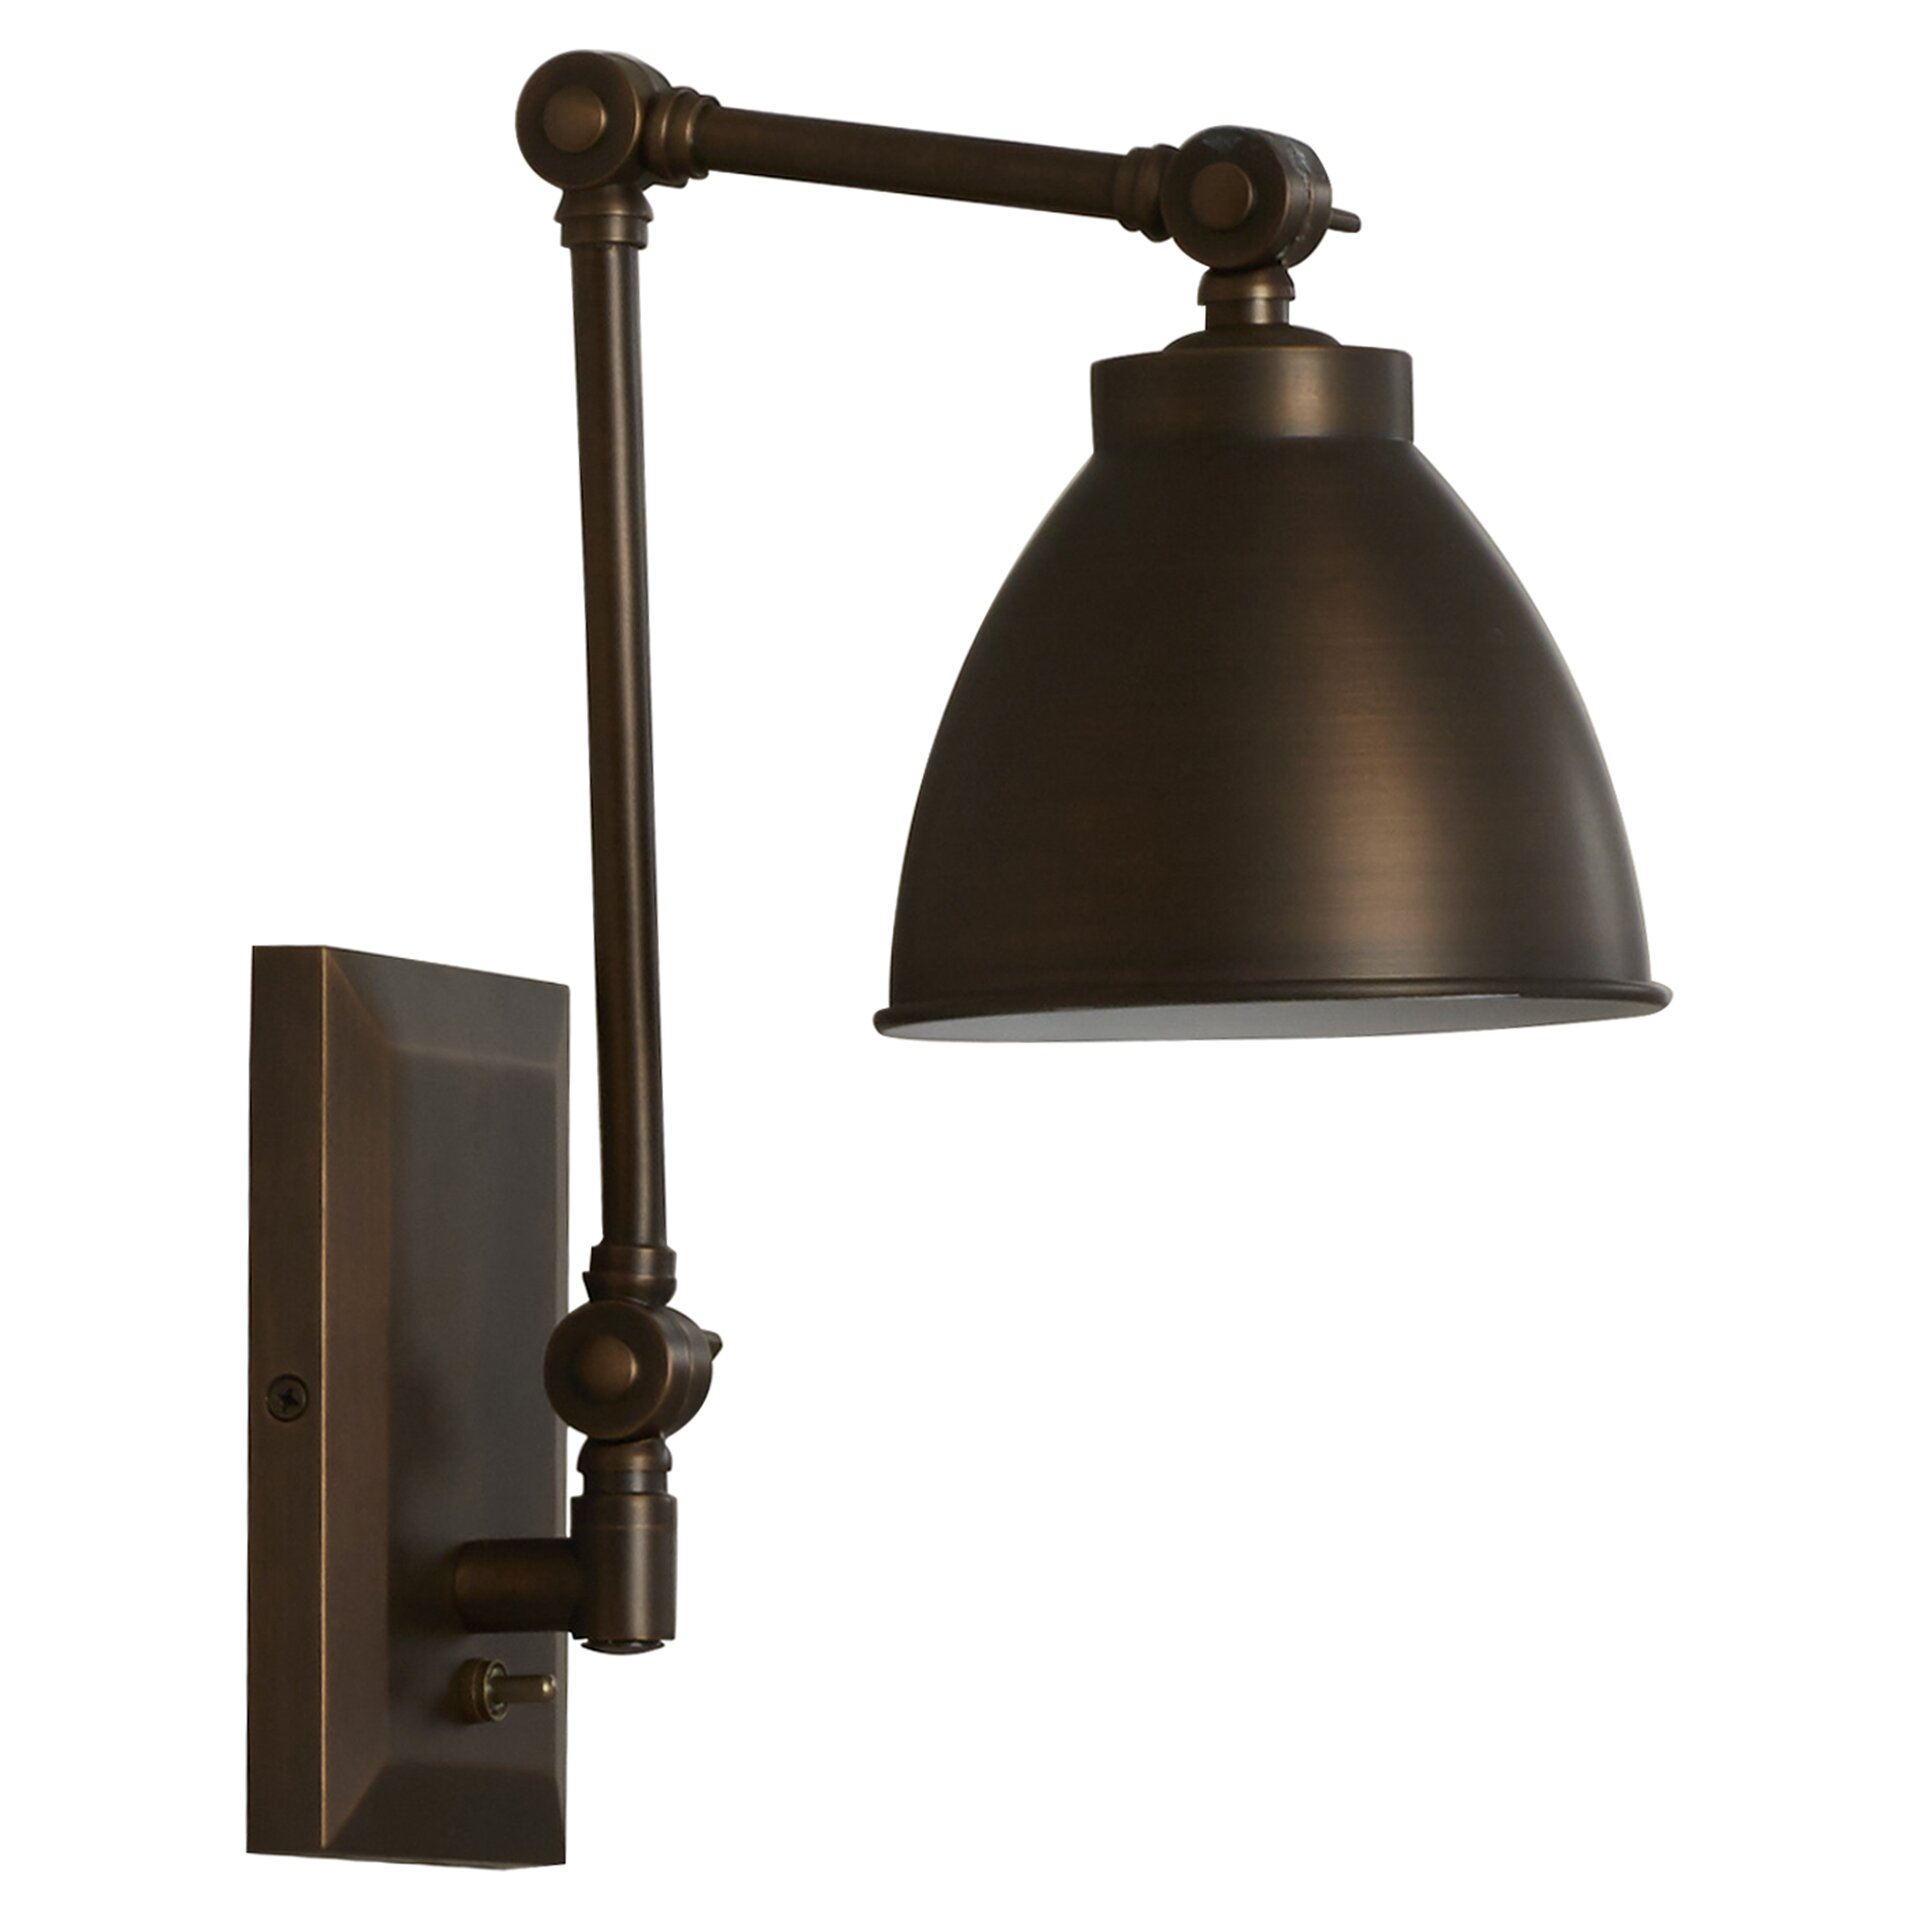 Trent Austin Design Bluntleaf Swing Arm Wall Sconce